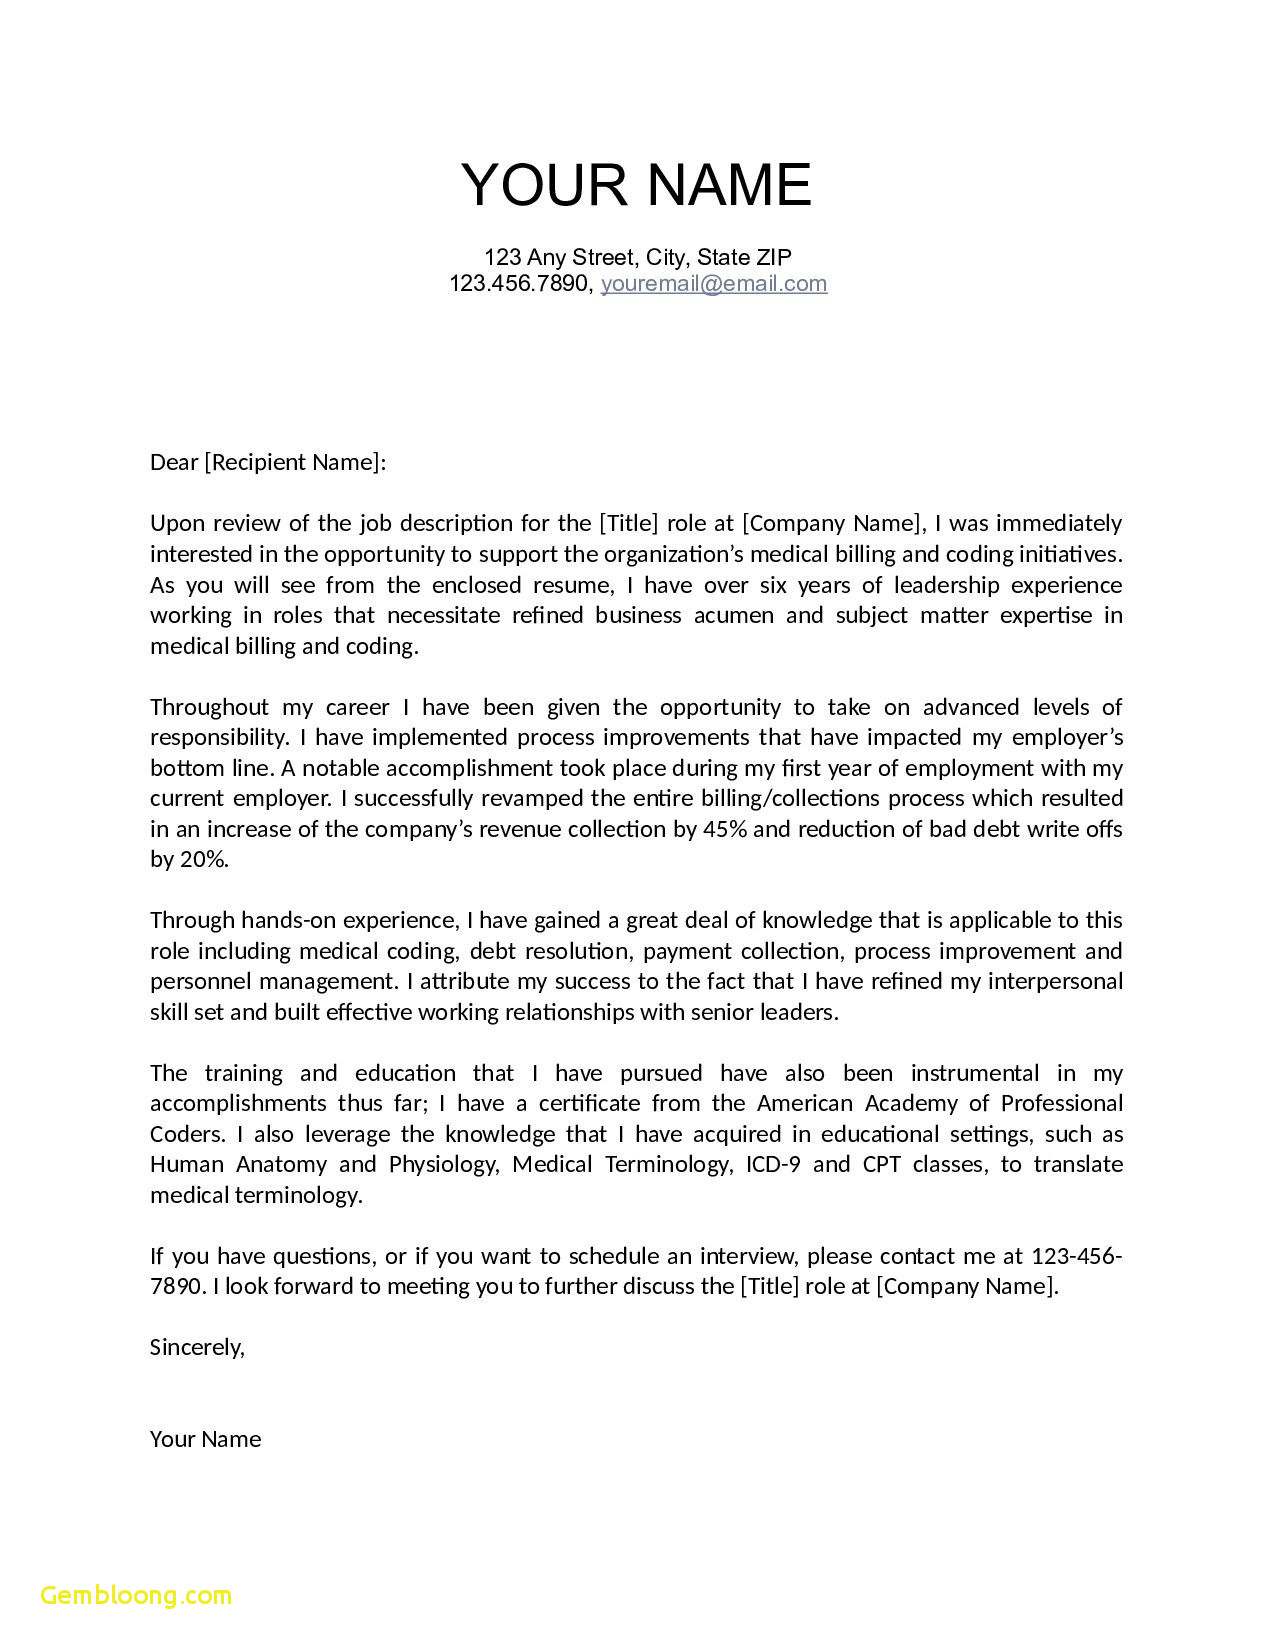 Free Online Cover Letter Template - Resume Maker Freeware Free Download Cover Letter Template for A Job